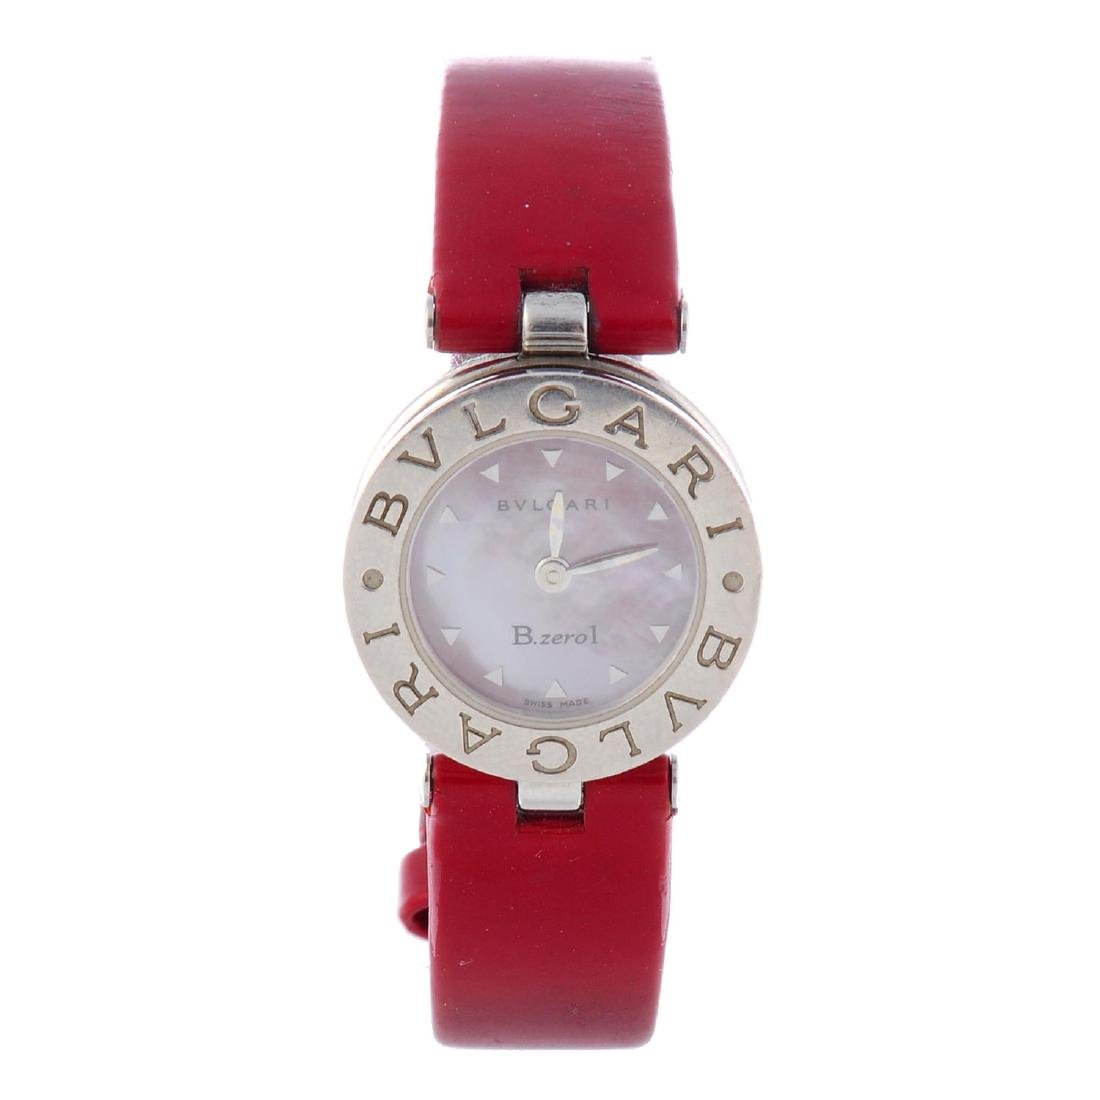 BULGARI - a lady's B.zero1 wrist watch. Stainless steel